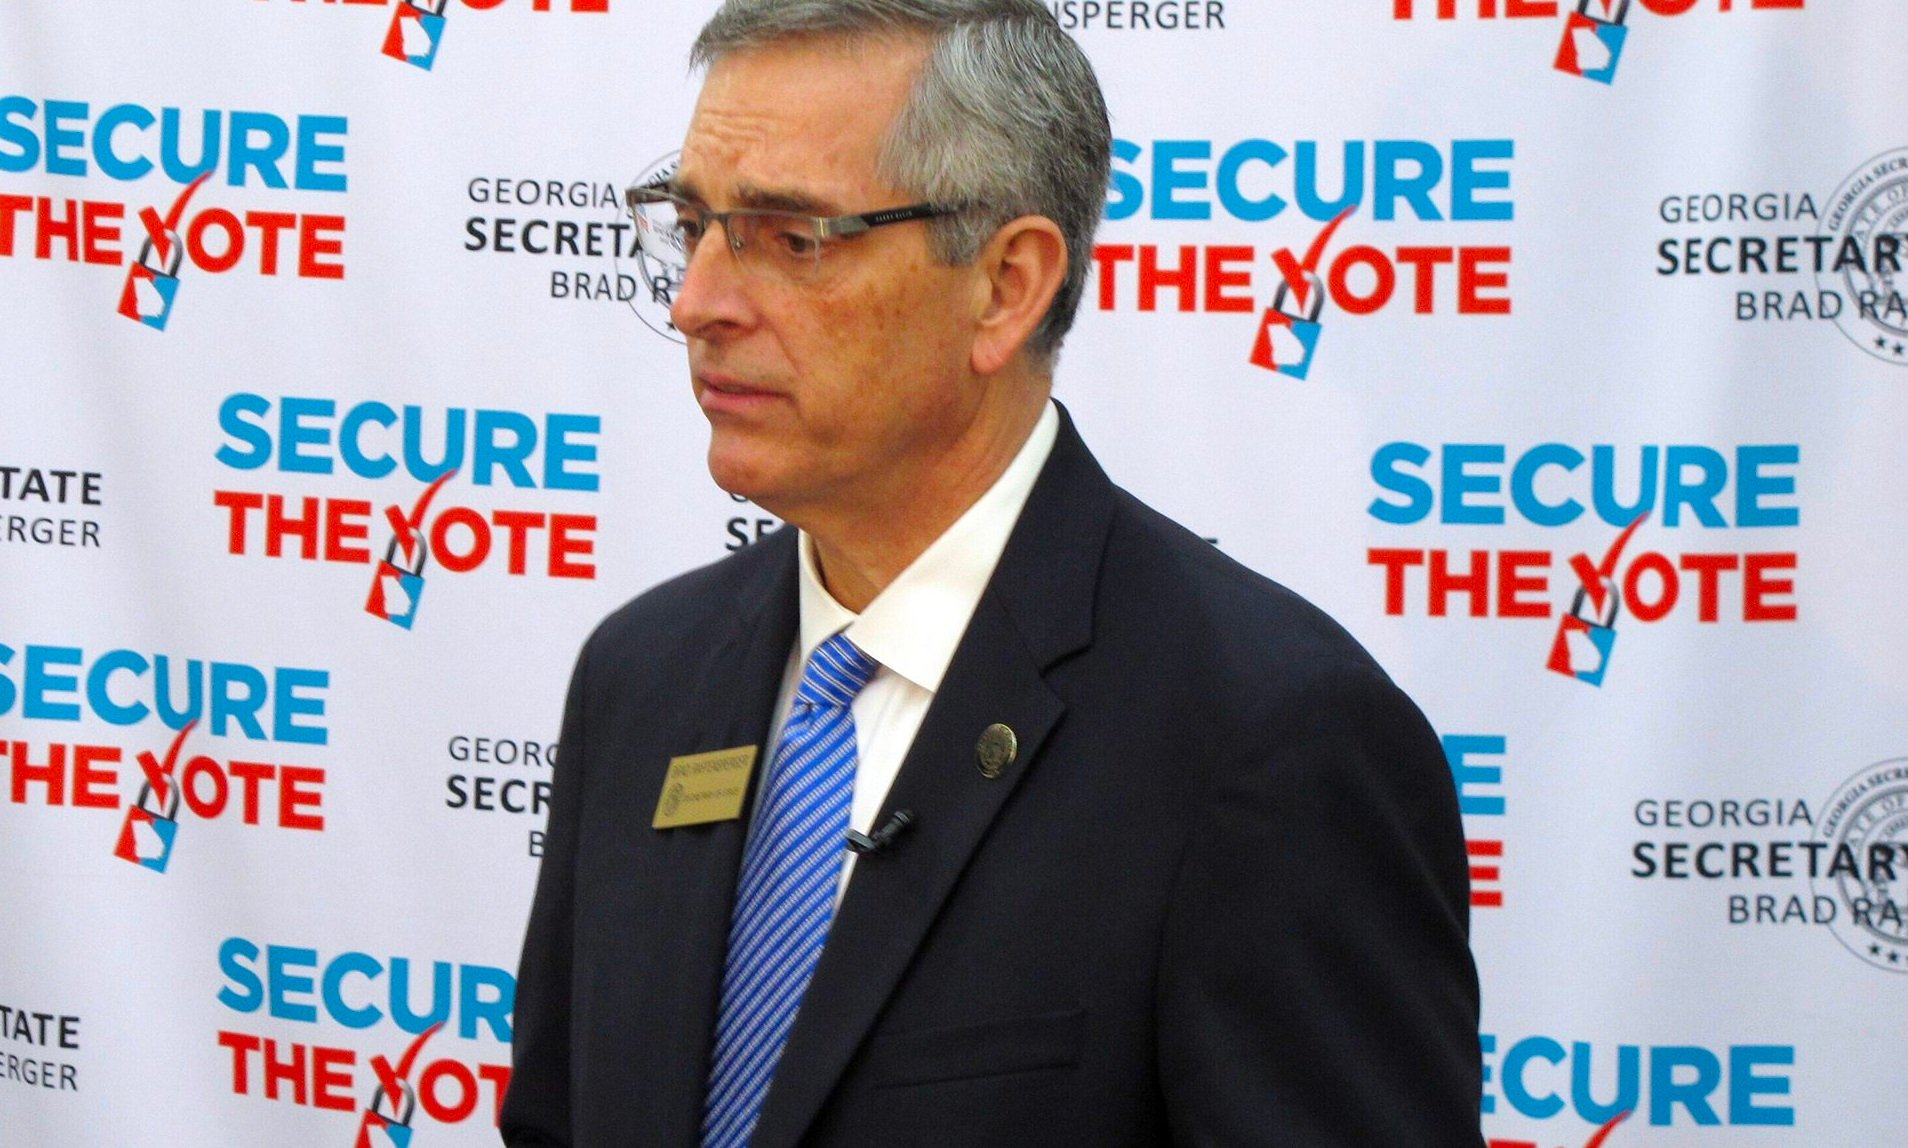 Lin Wood lawsuit challenges GA secretary of state's dark unconstitutional agreement with Hillary attorney Marc Elias